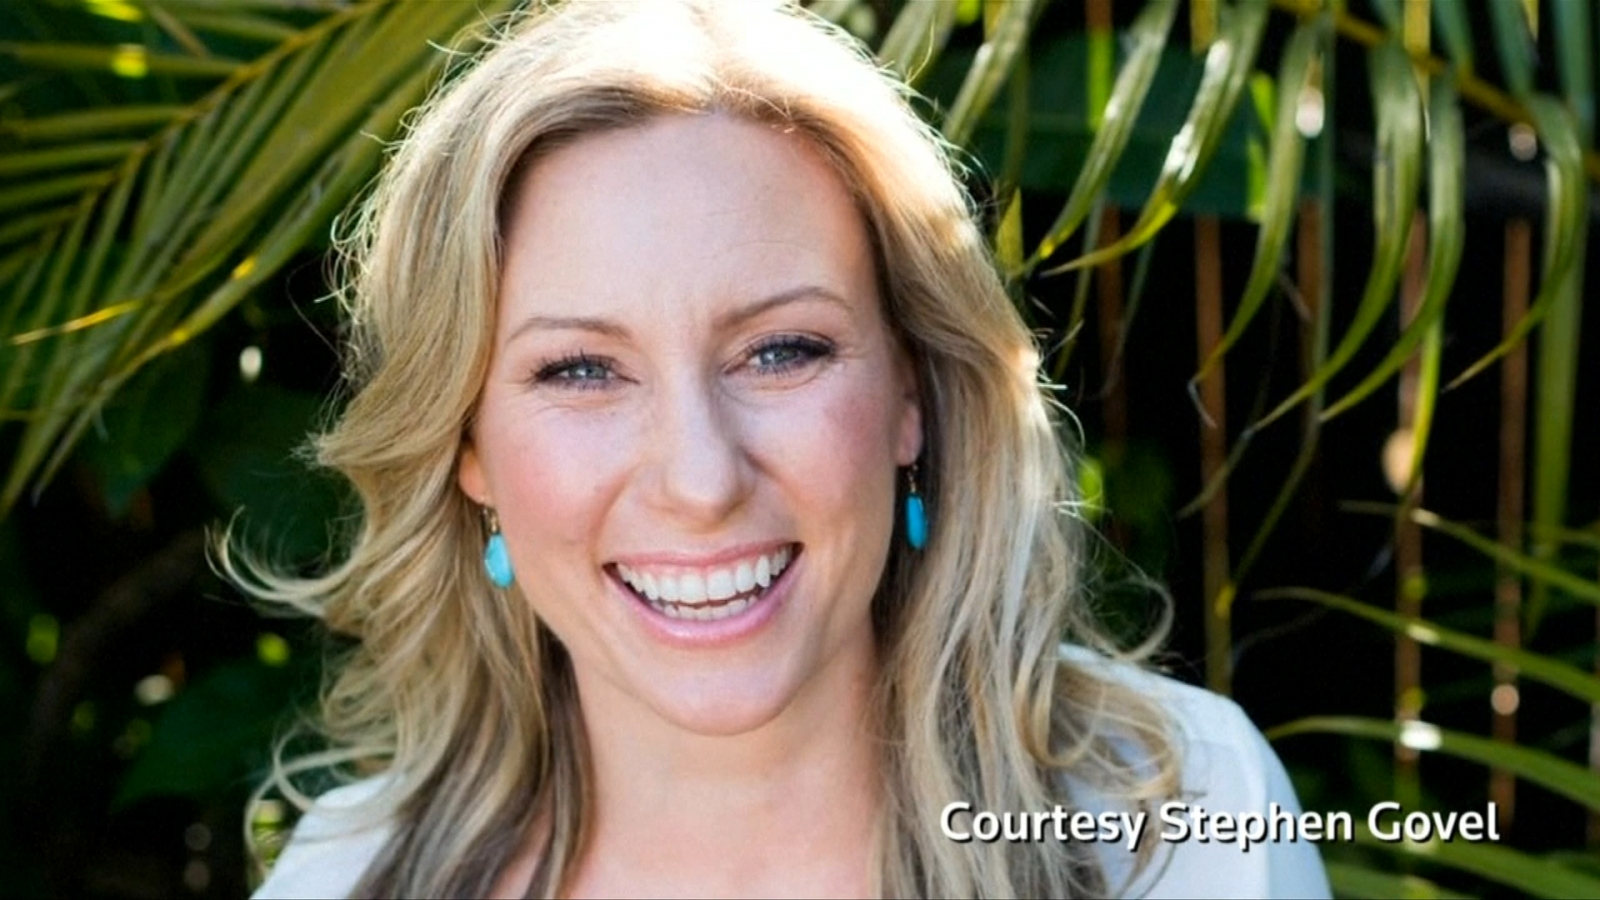 Fiancee of Australian woman fatally shot by police says family is desperate for answers